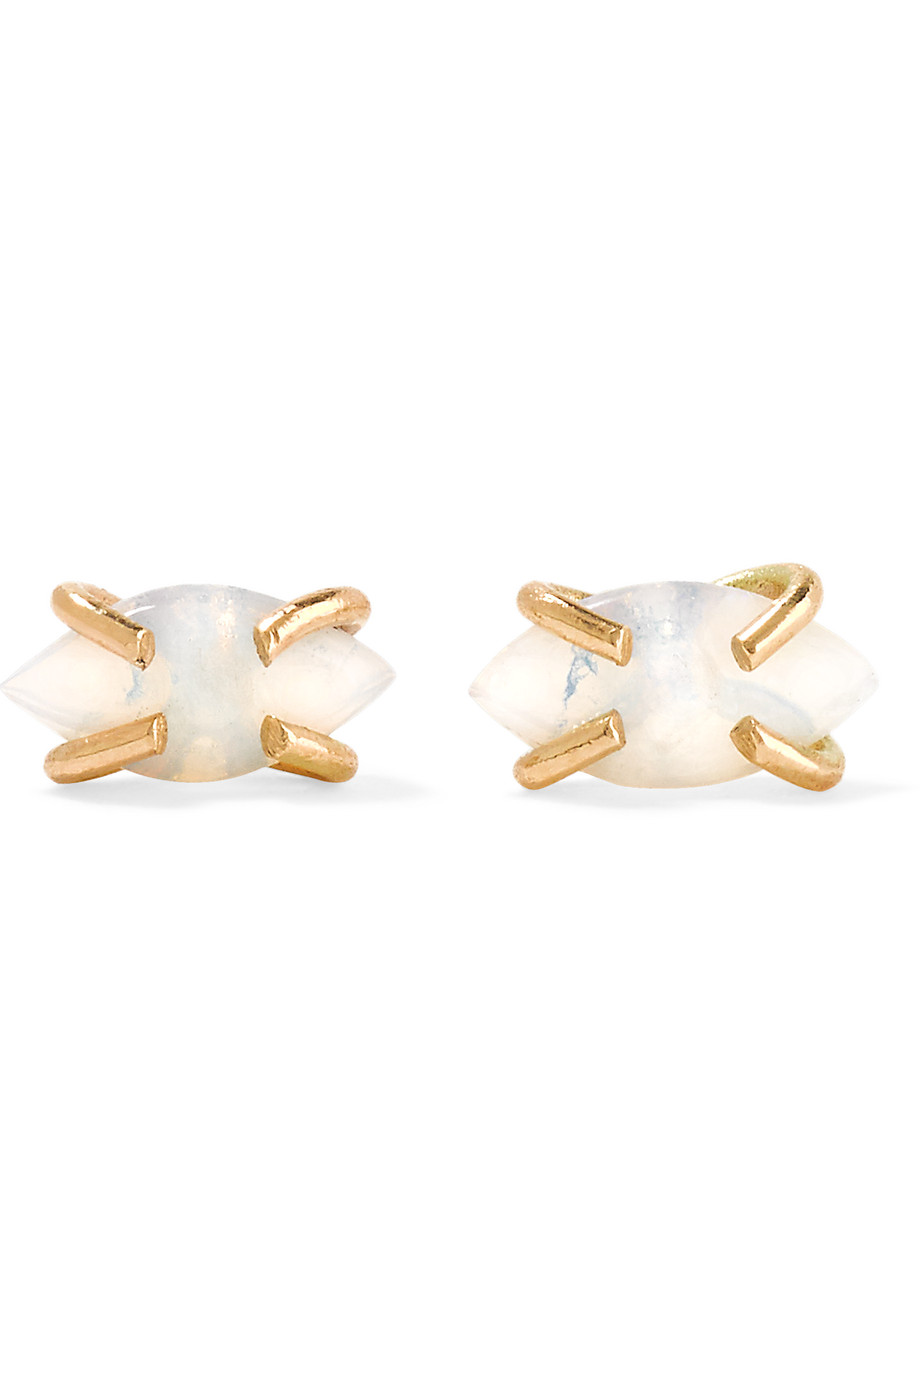 14-Karat Gold Opal Earrings, Melissa Joy Manning, Gold/White, Women's